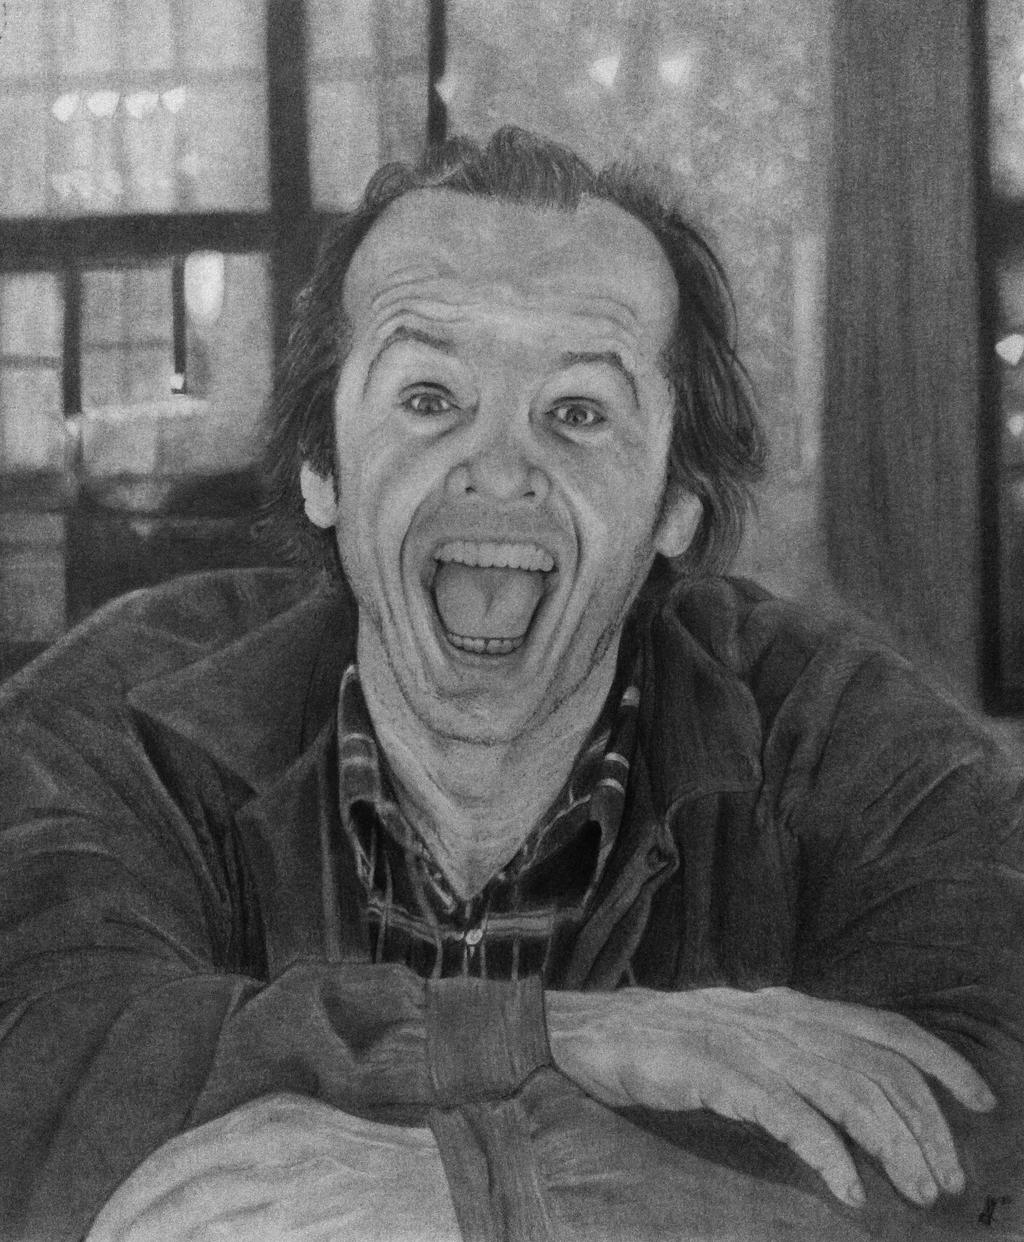 Pictures Of Jack Nicholson The Shining Frozen Rock Cafe